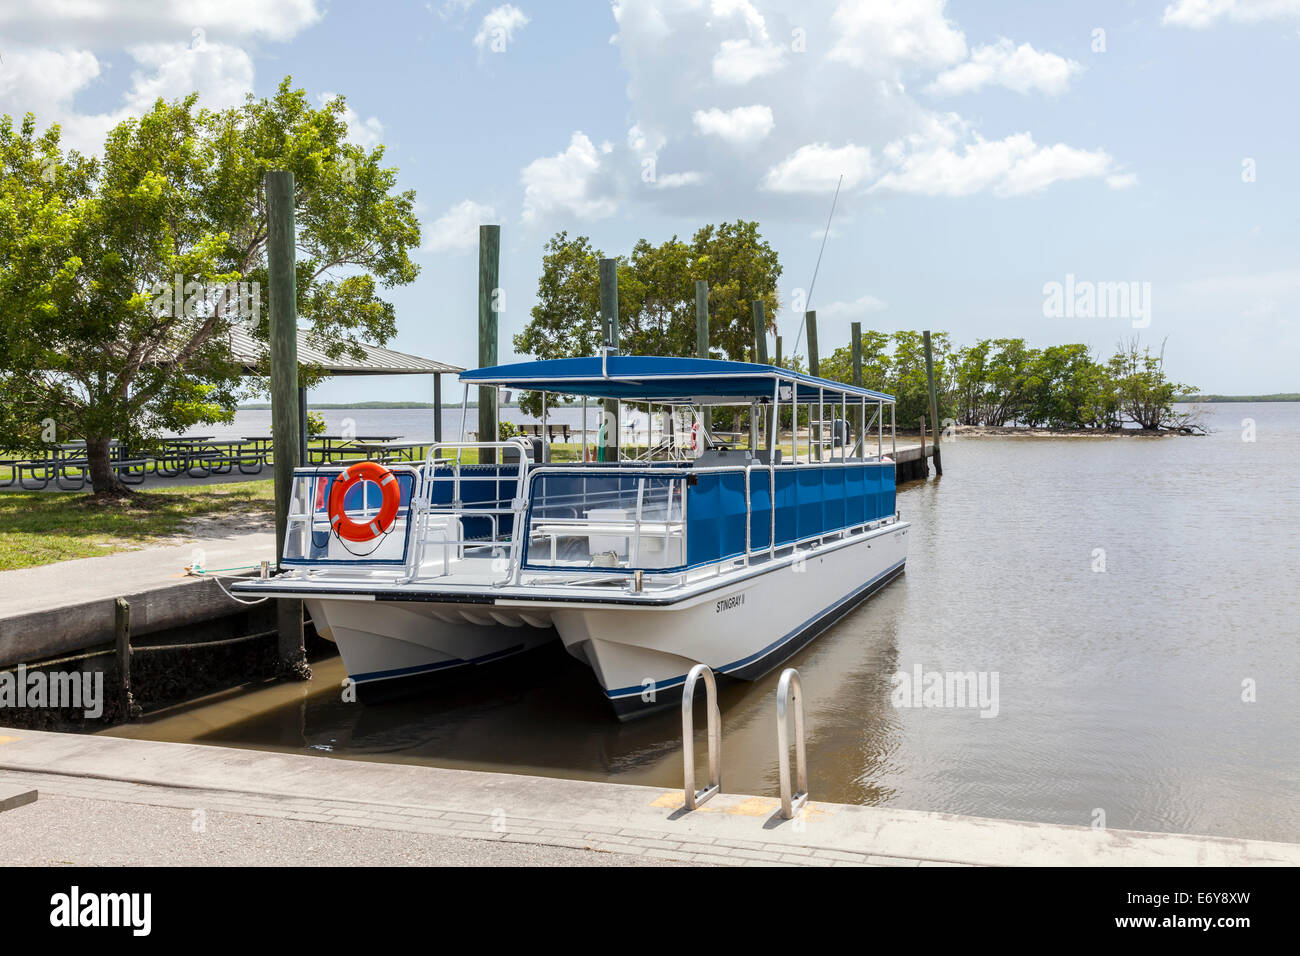 Stingray II, sightseeing pontoon boat docked in the Everglades City Marina, Florida, USA. - Stock Image